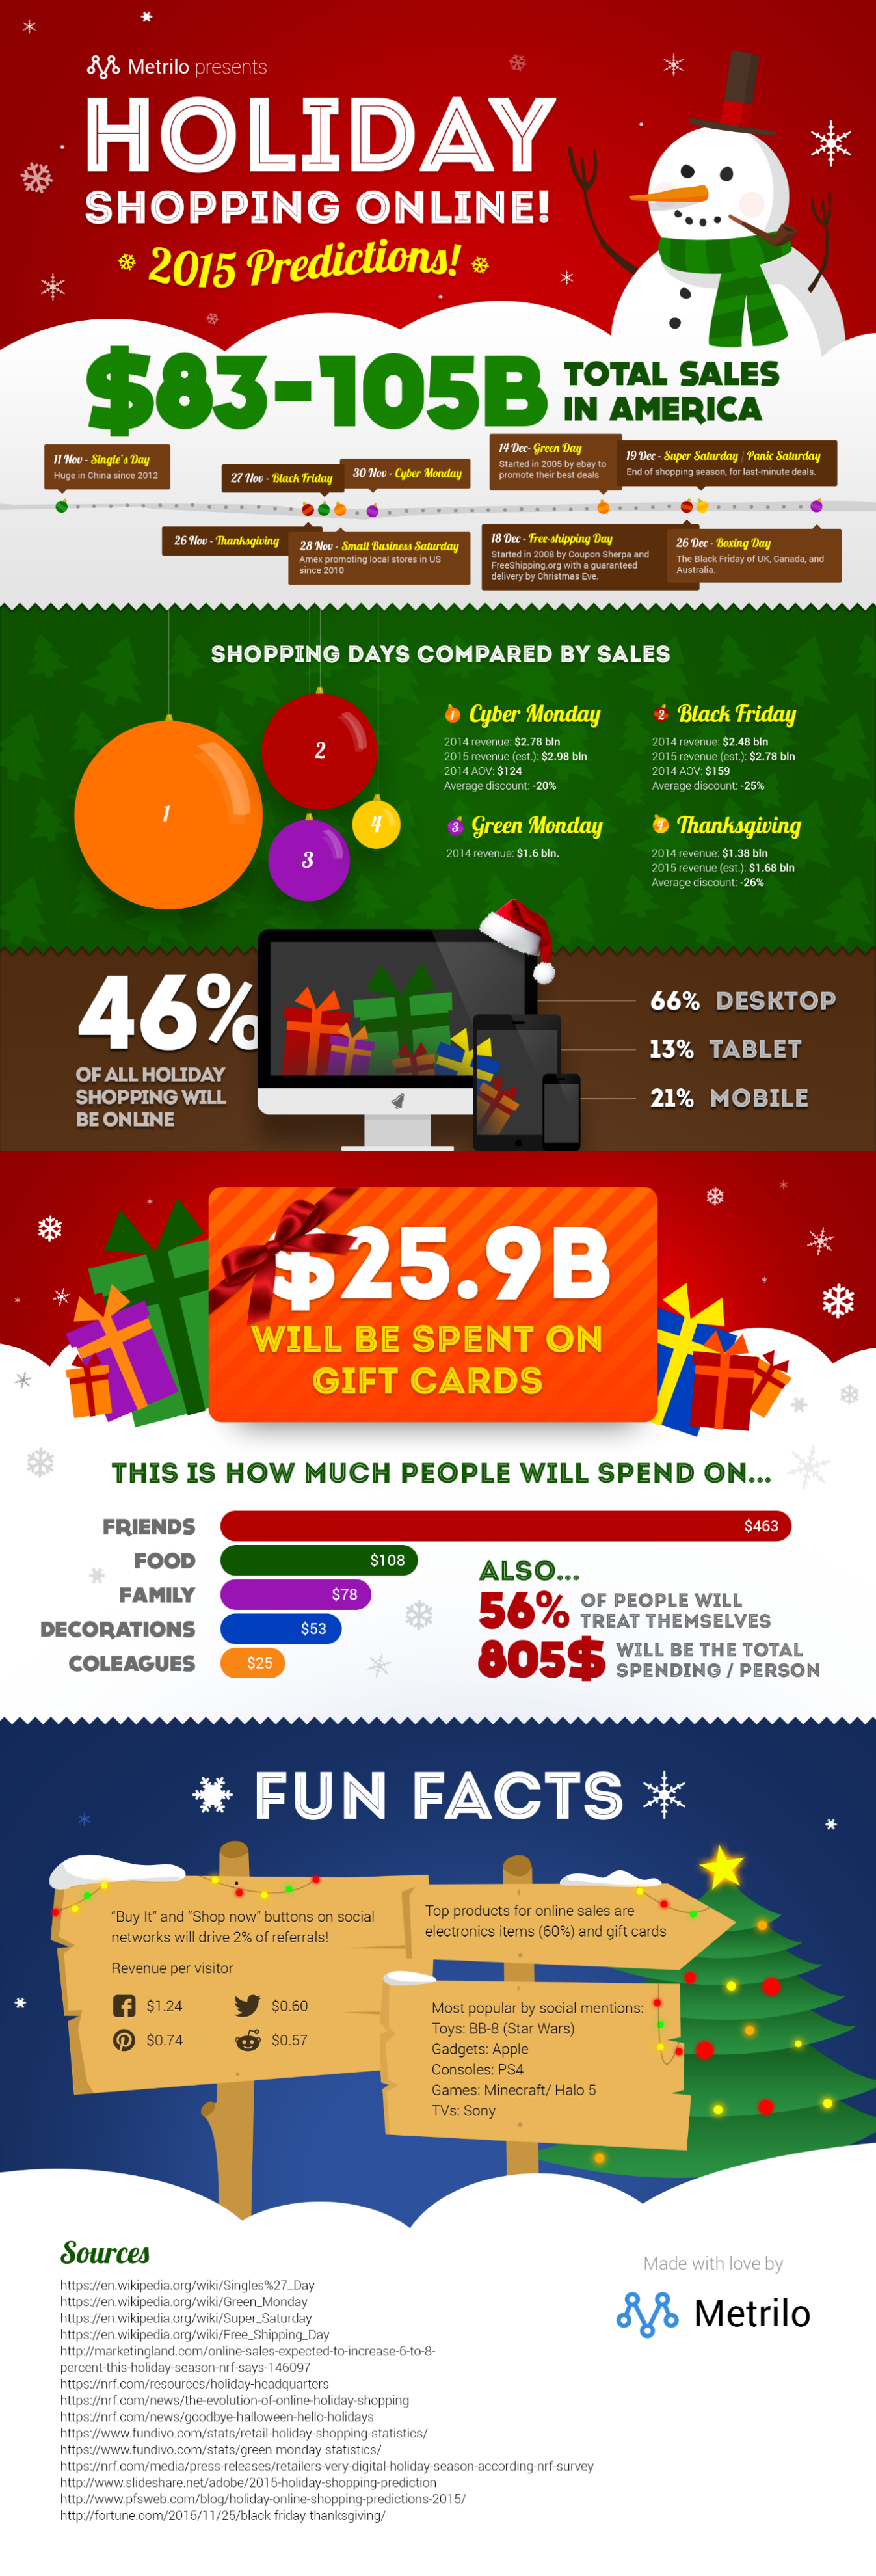 Metrilo infographic holiday online shopping